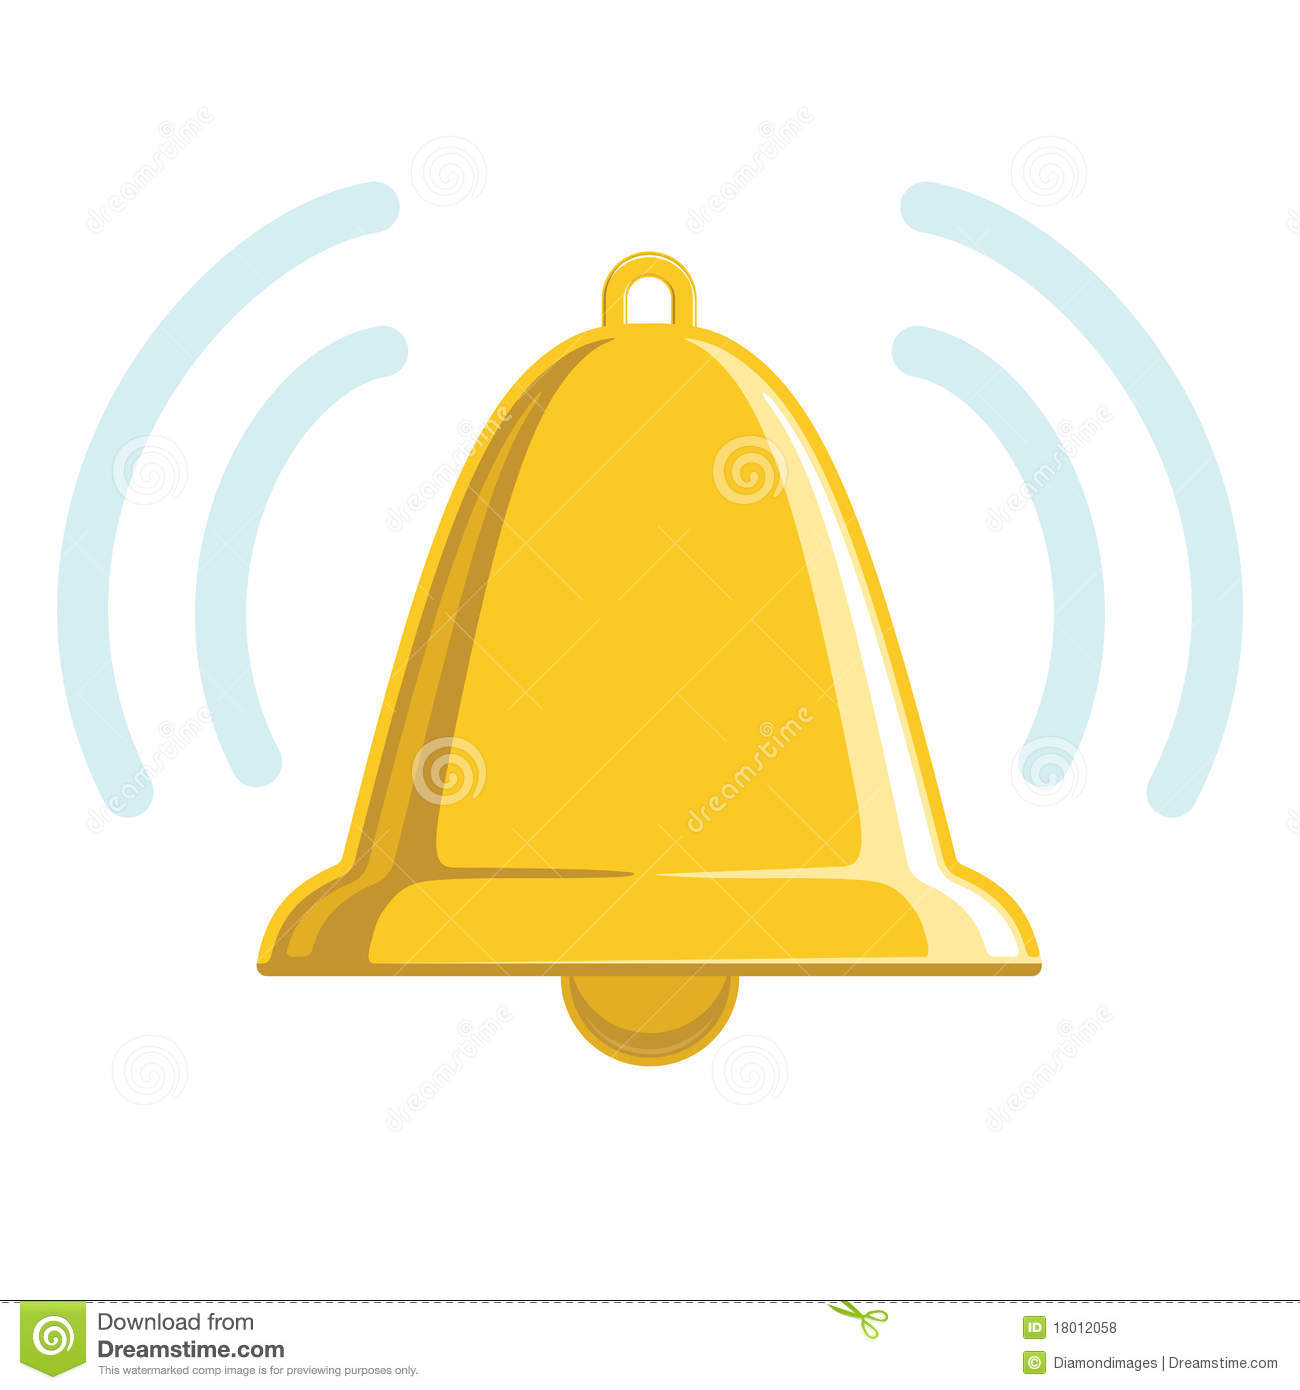 Royalty Free Stock Photos Chiming Golden Bell Image18012058 on emergency siren sound